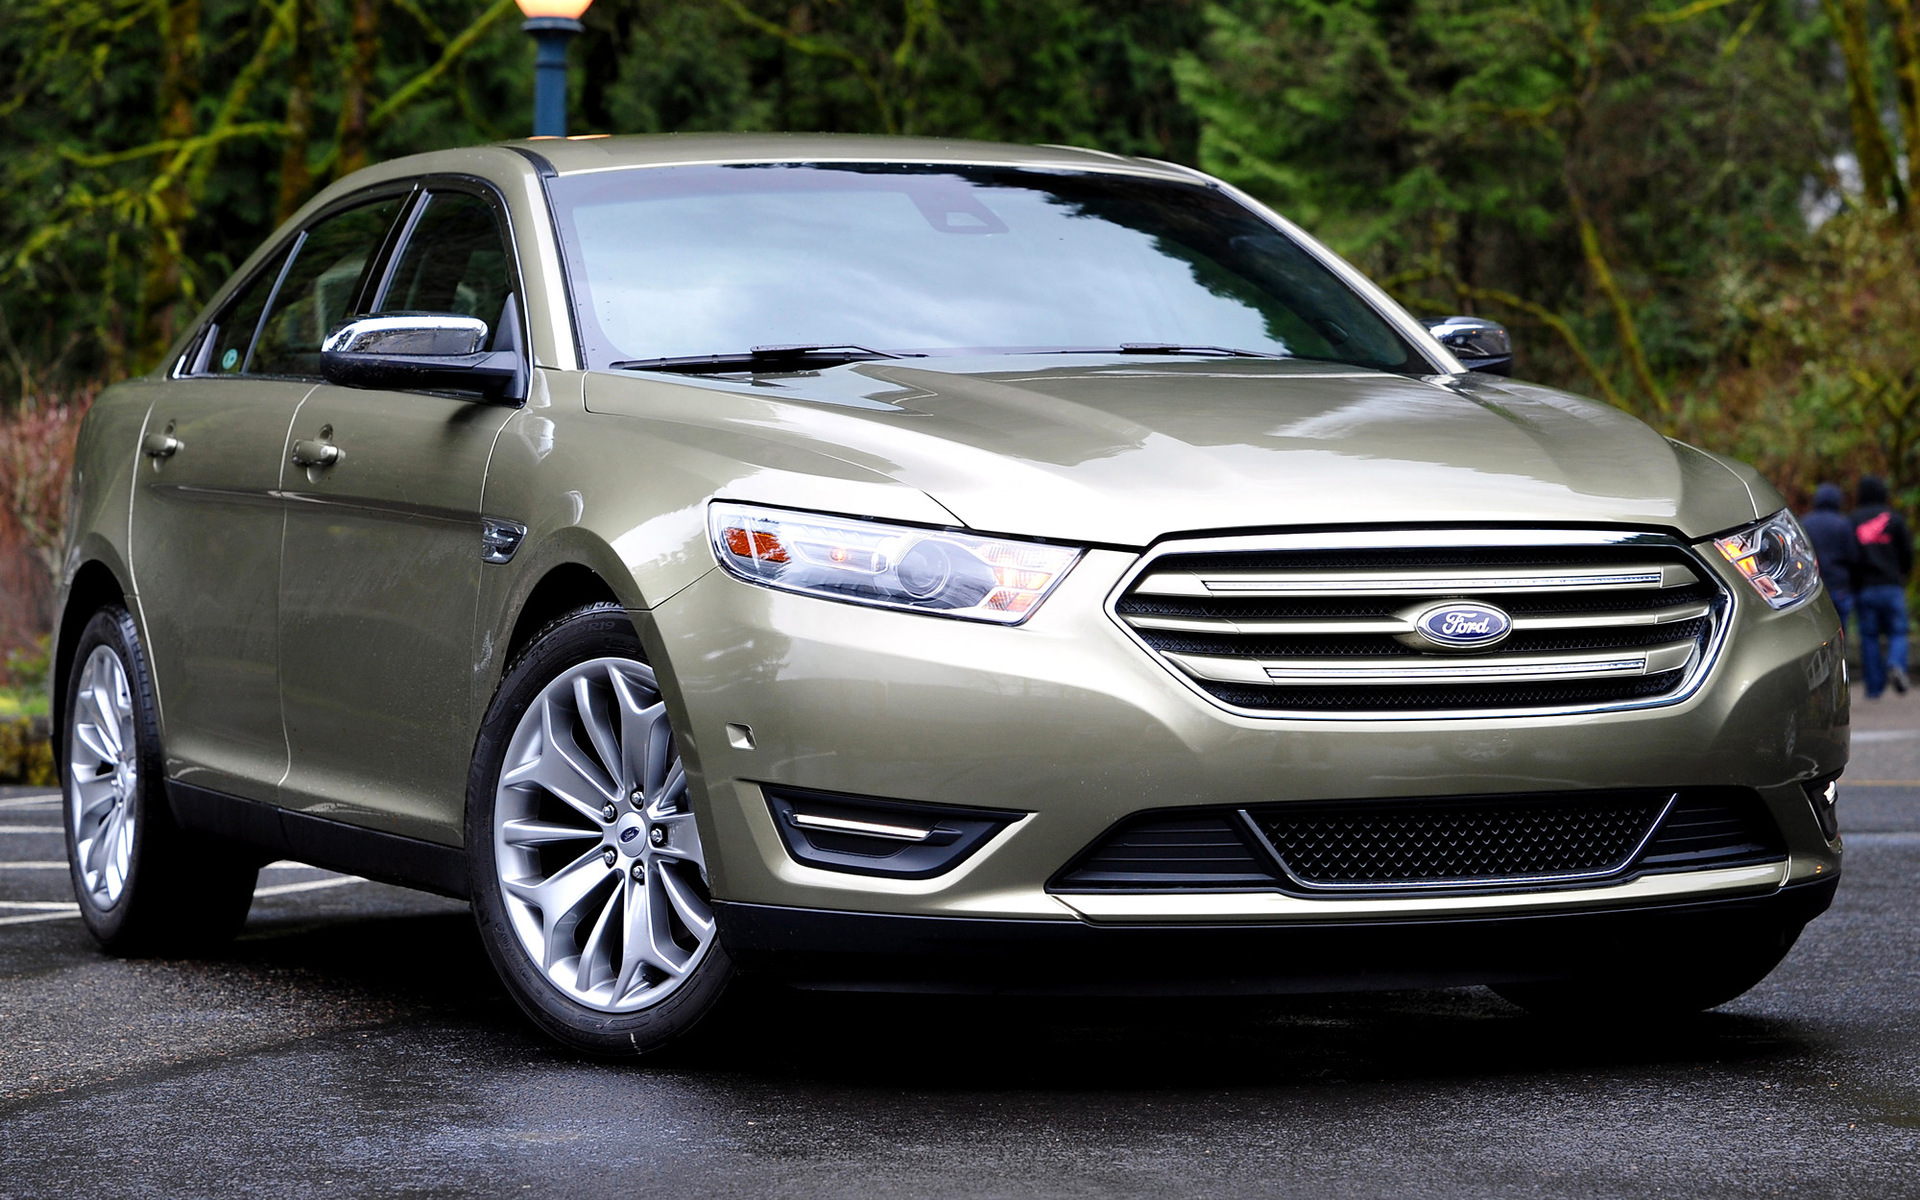 Ford Taurus (2013) Wallpapers and HD Images - Car Pixel